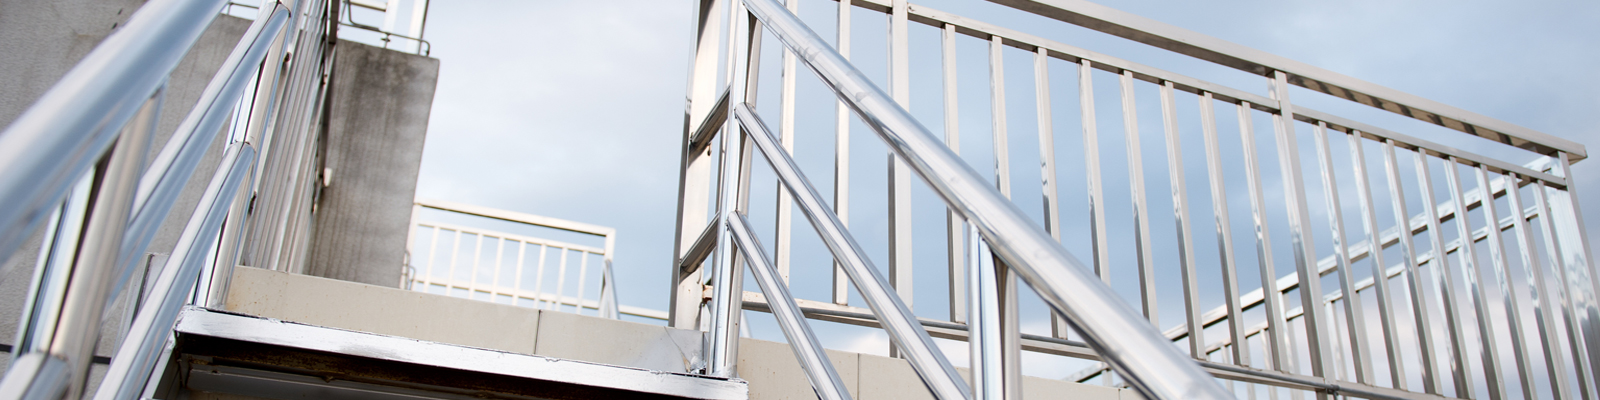 slider-stainless-railings